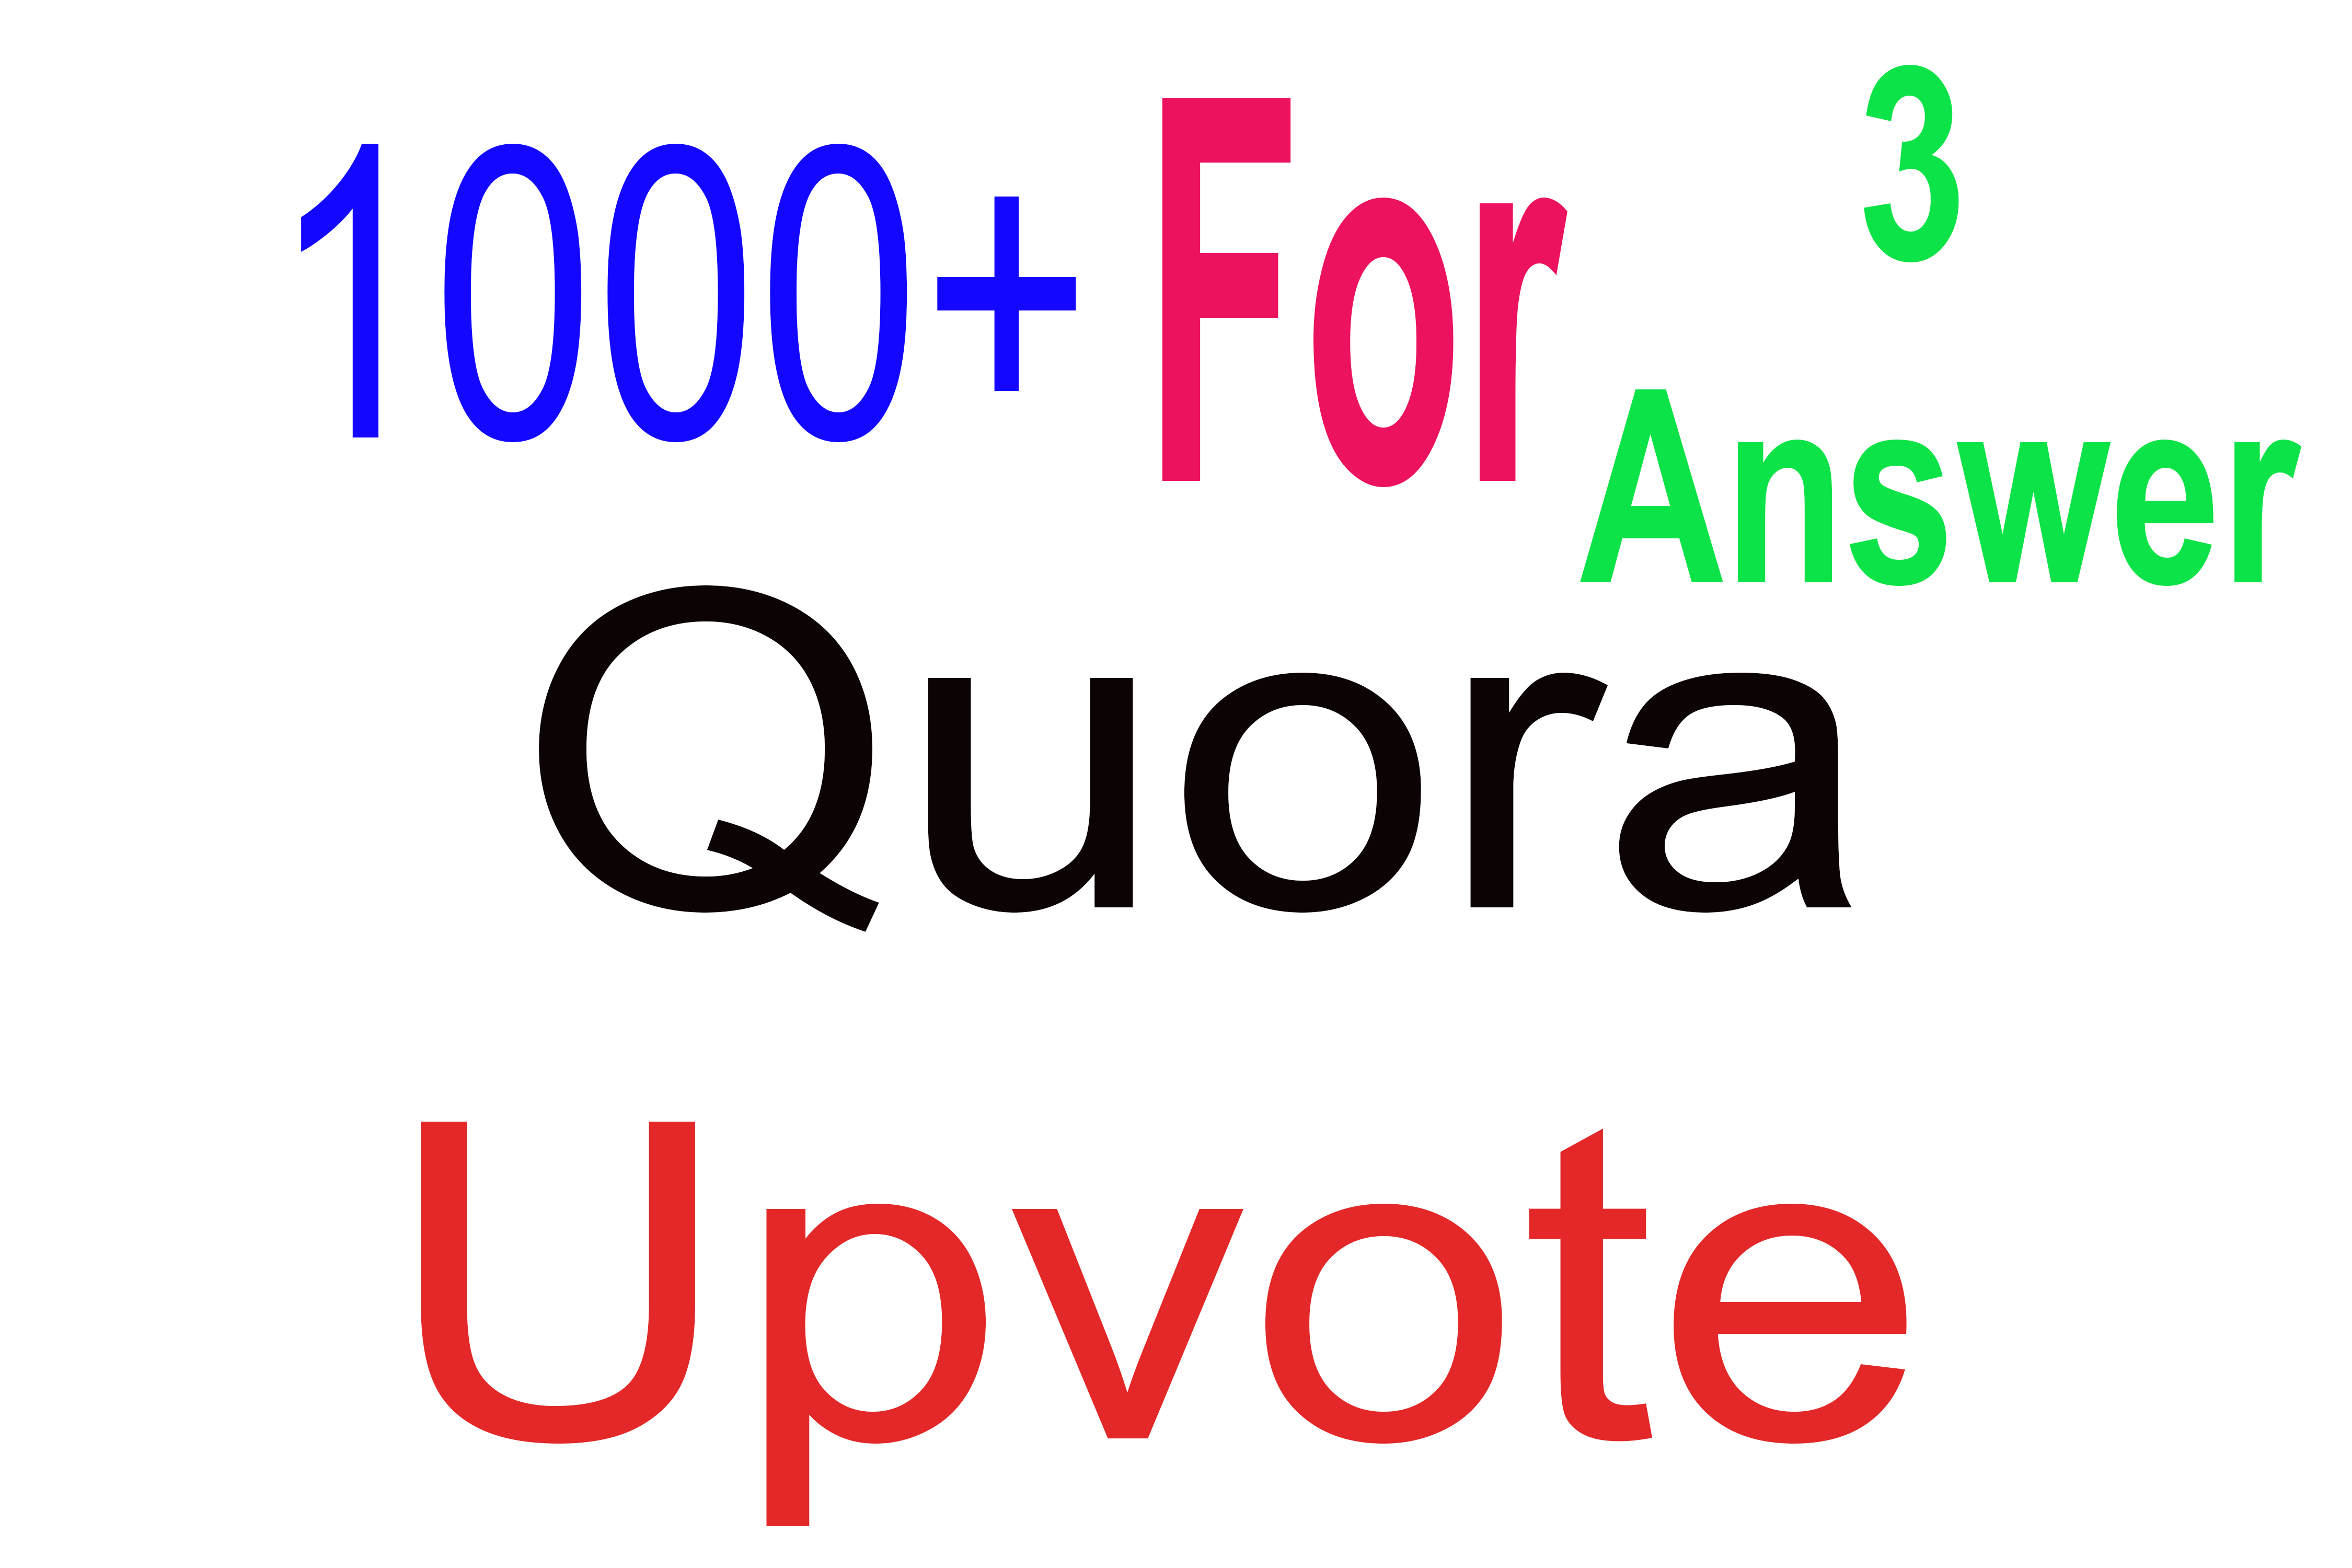 1000+ Quora Upvotes for your answer